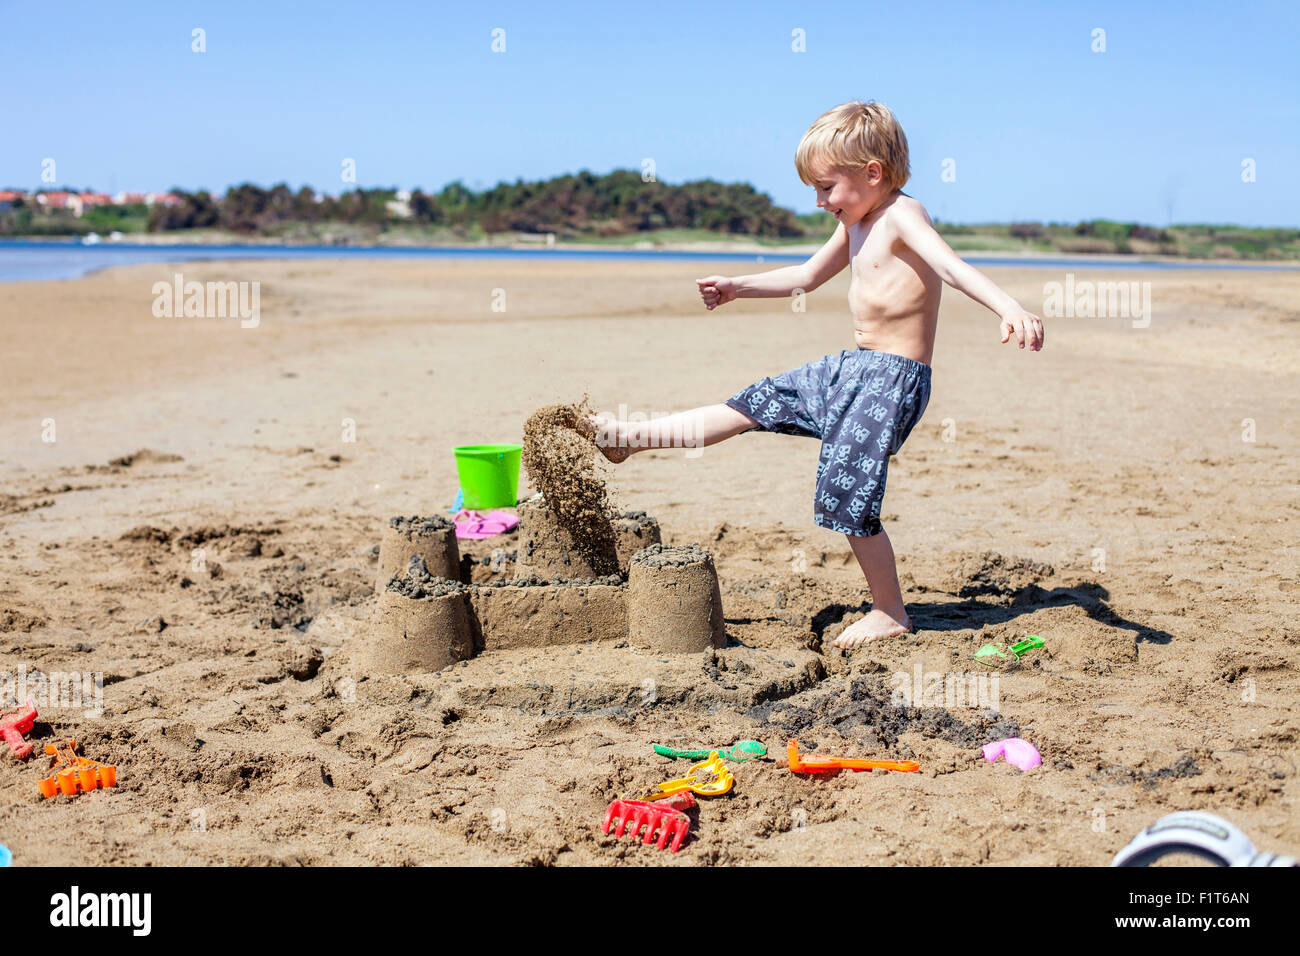 Boy kicking against sandcastle on beach - Stock Image